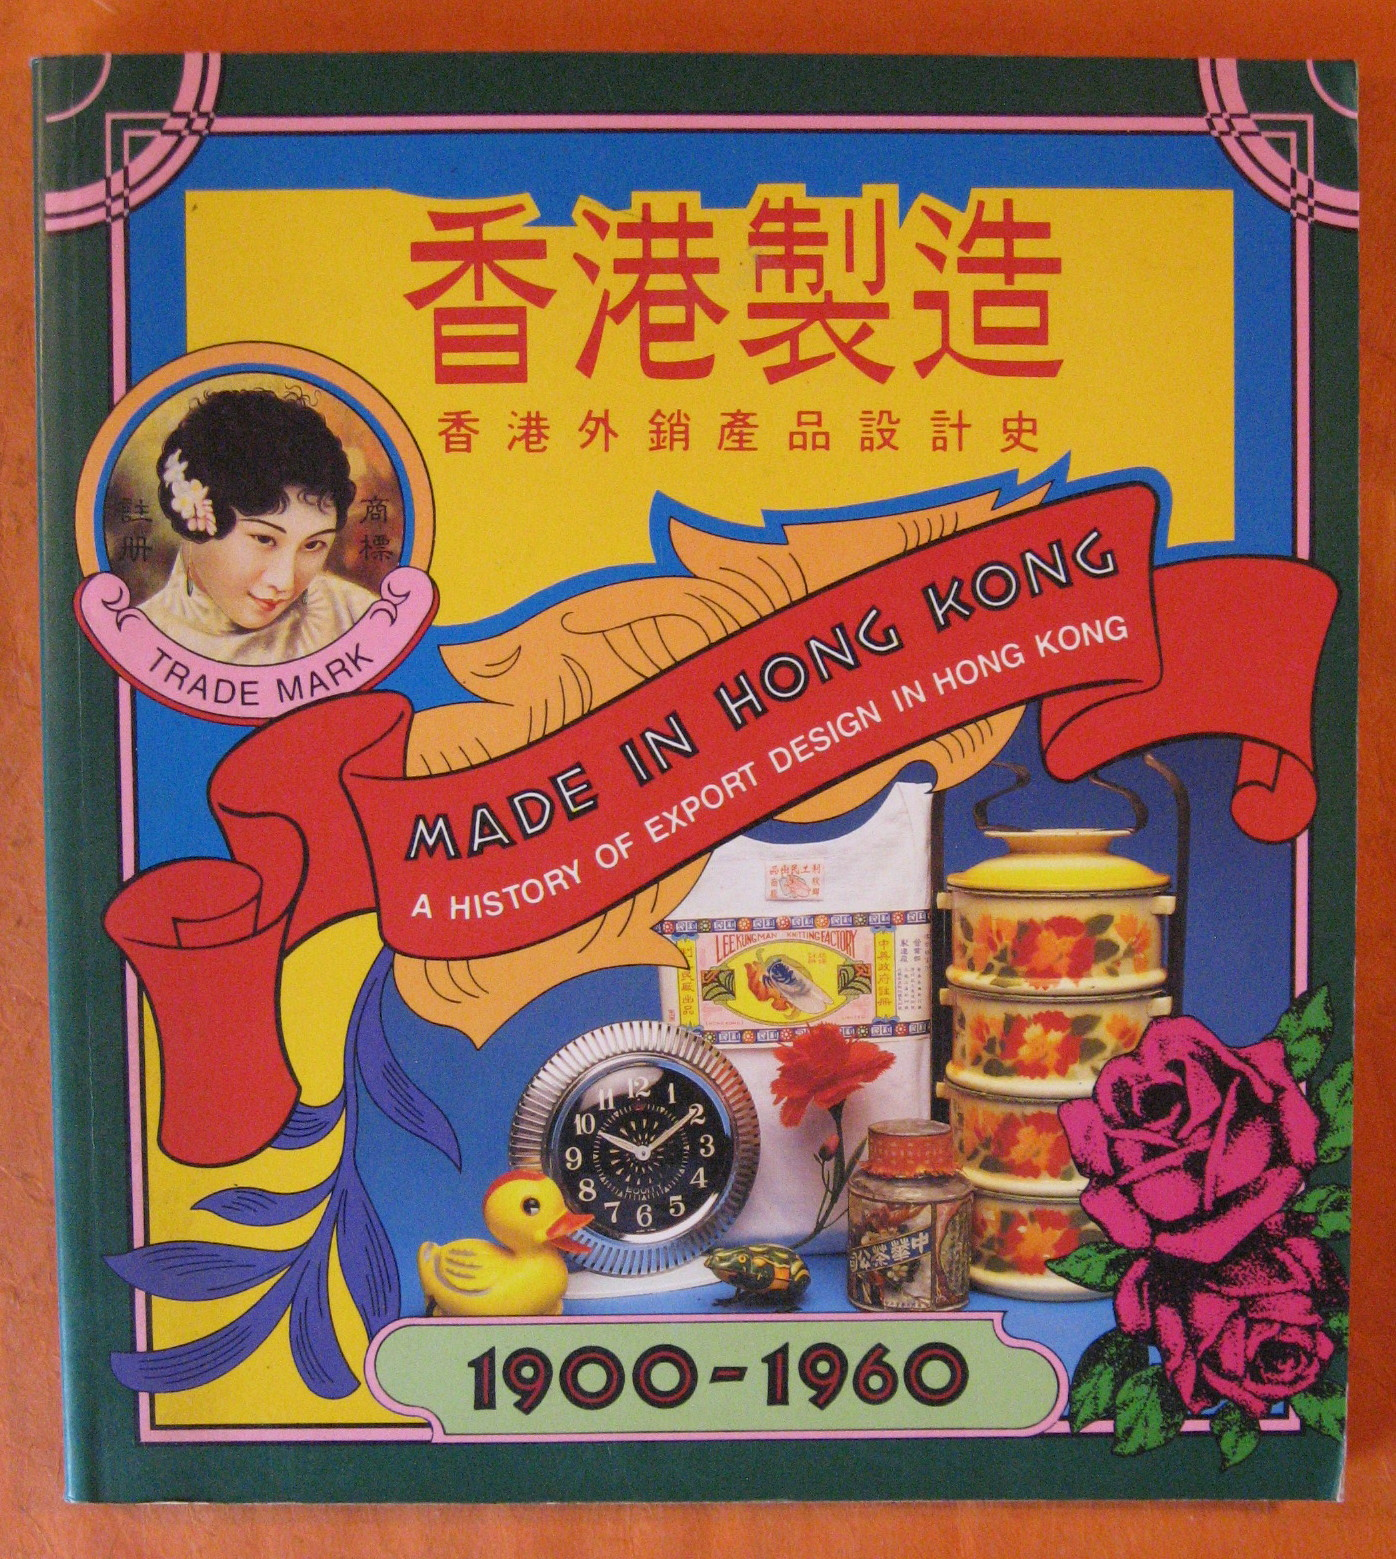 Made in Hong Kong:  A History of Export Design in Hong Kong 1900-1960